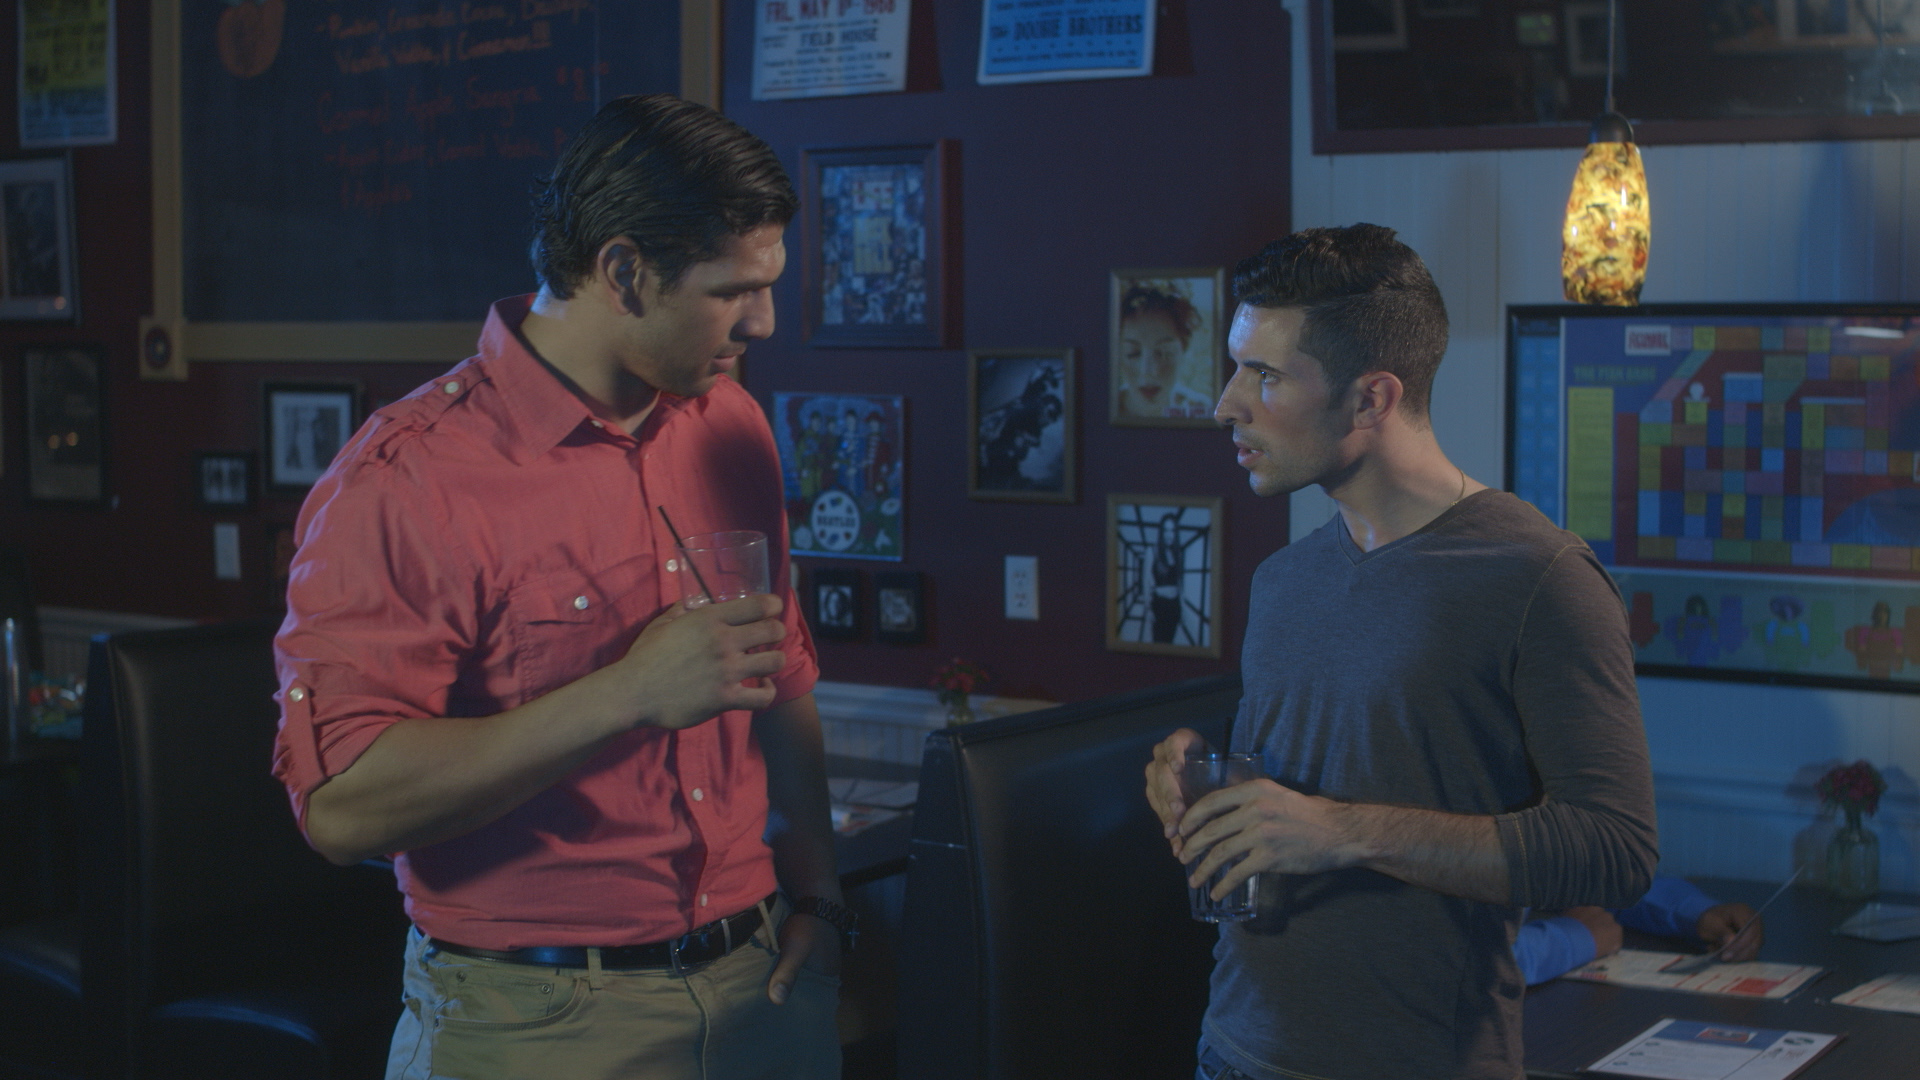 Casey William Hines and Andrew Morais in Geena Matuson's (@geenamatuson) upcoming short 'The Best A Man Can Get' filmed at Rock 'n' Roll Rib Joint in Medfield, MA. Cinematography by Denez McAdoo.